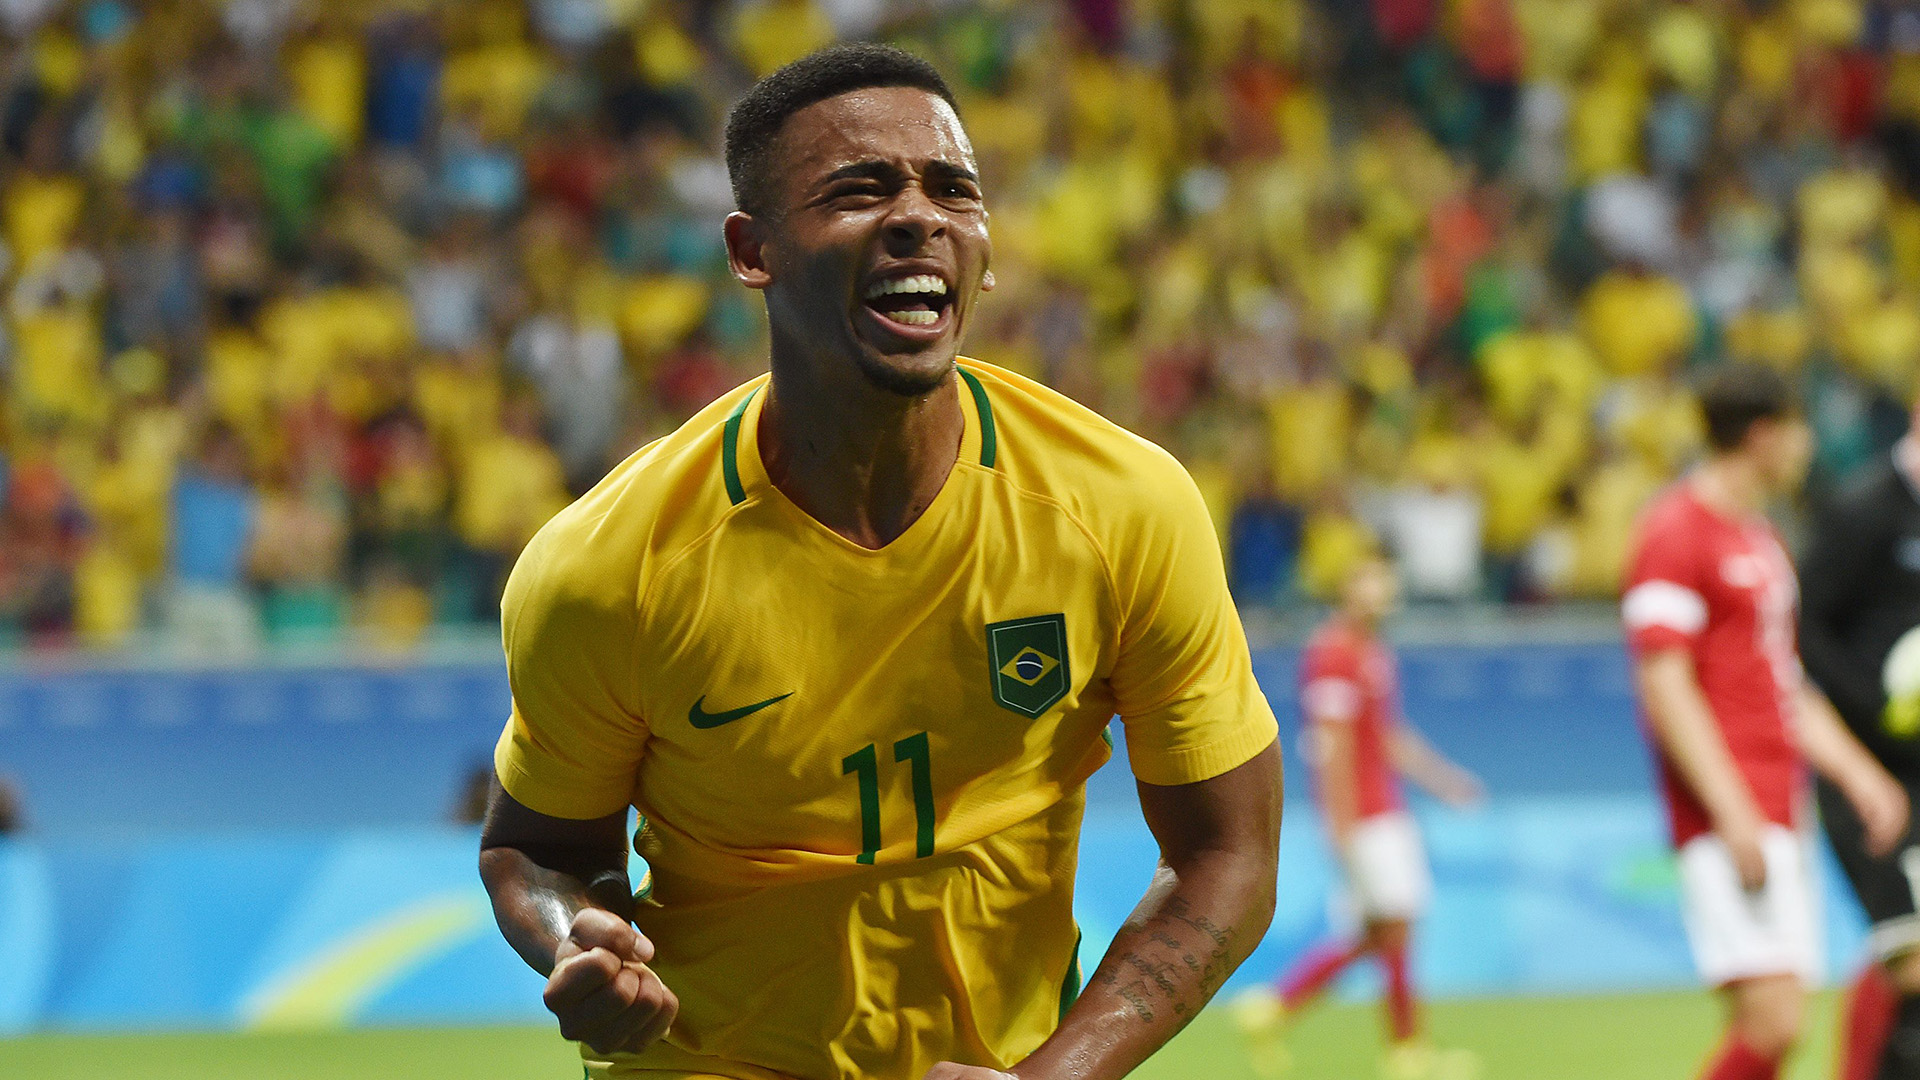 Hd Quotes Wallpapers For Laptop Gabriel Jesus Wallpapers Hd